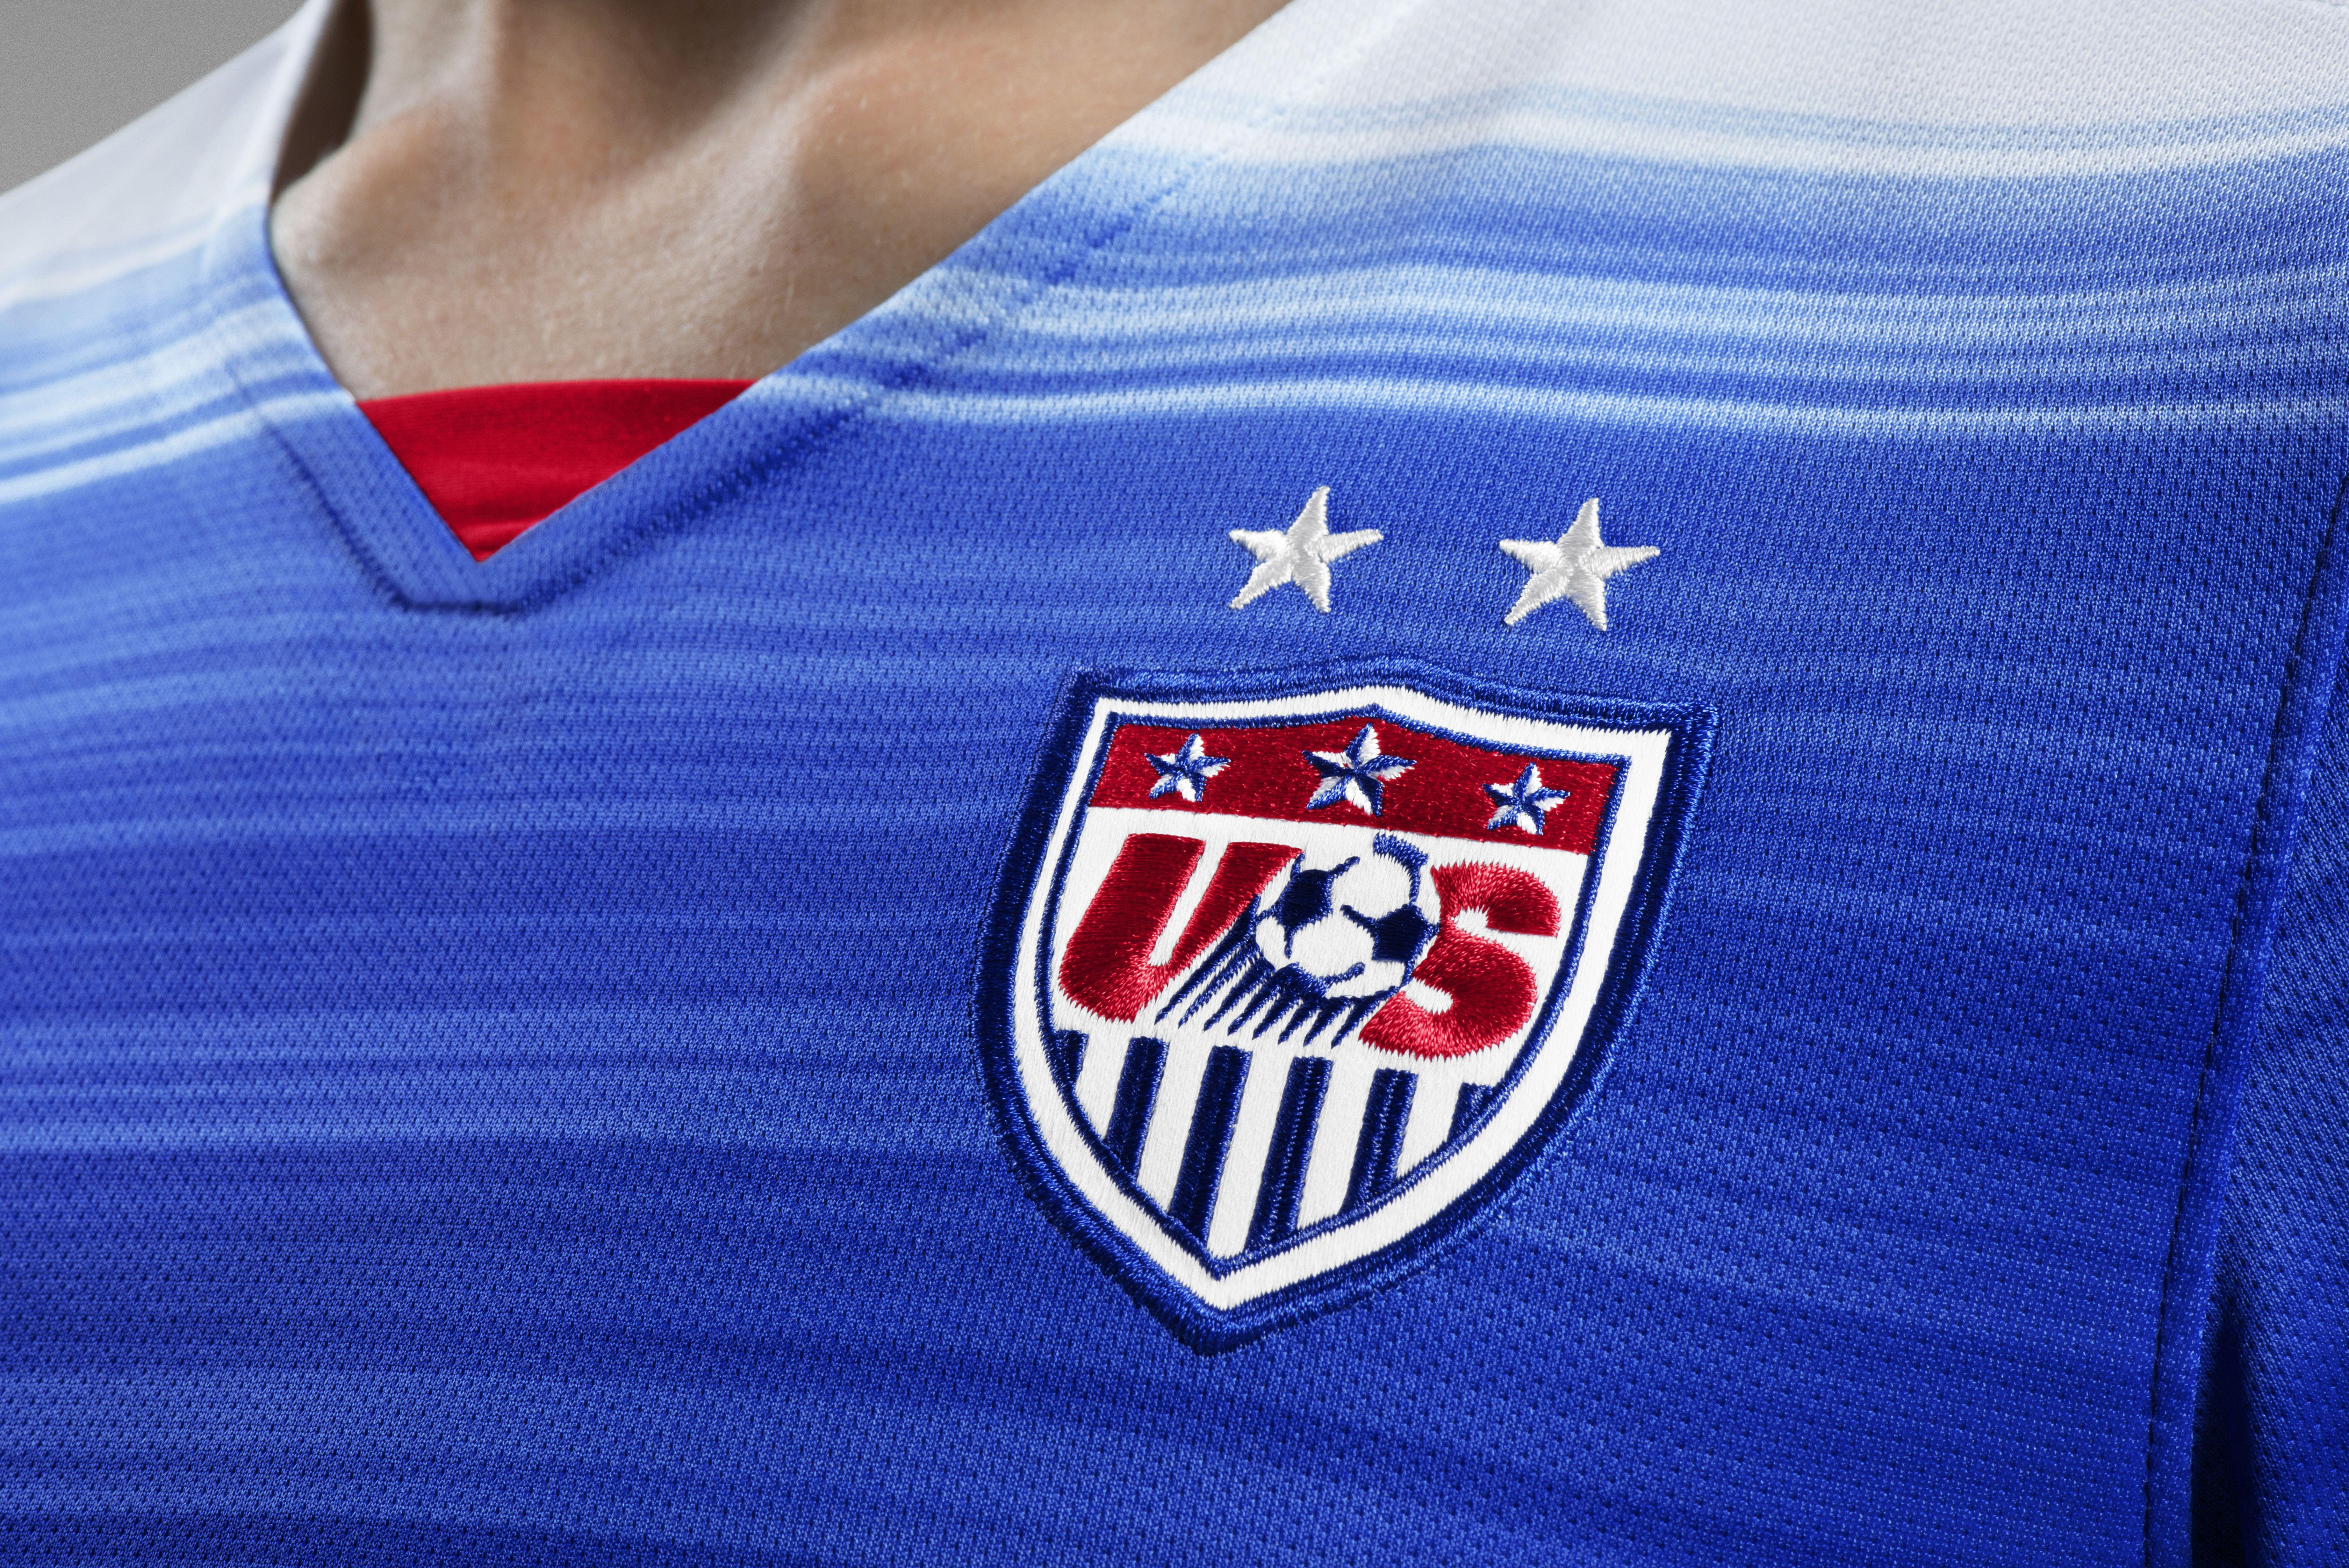 Nike News - NIKE UNVEILS 2015 U.S. NATIONAL TEAM AWAY KIT